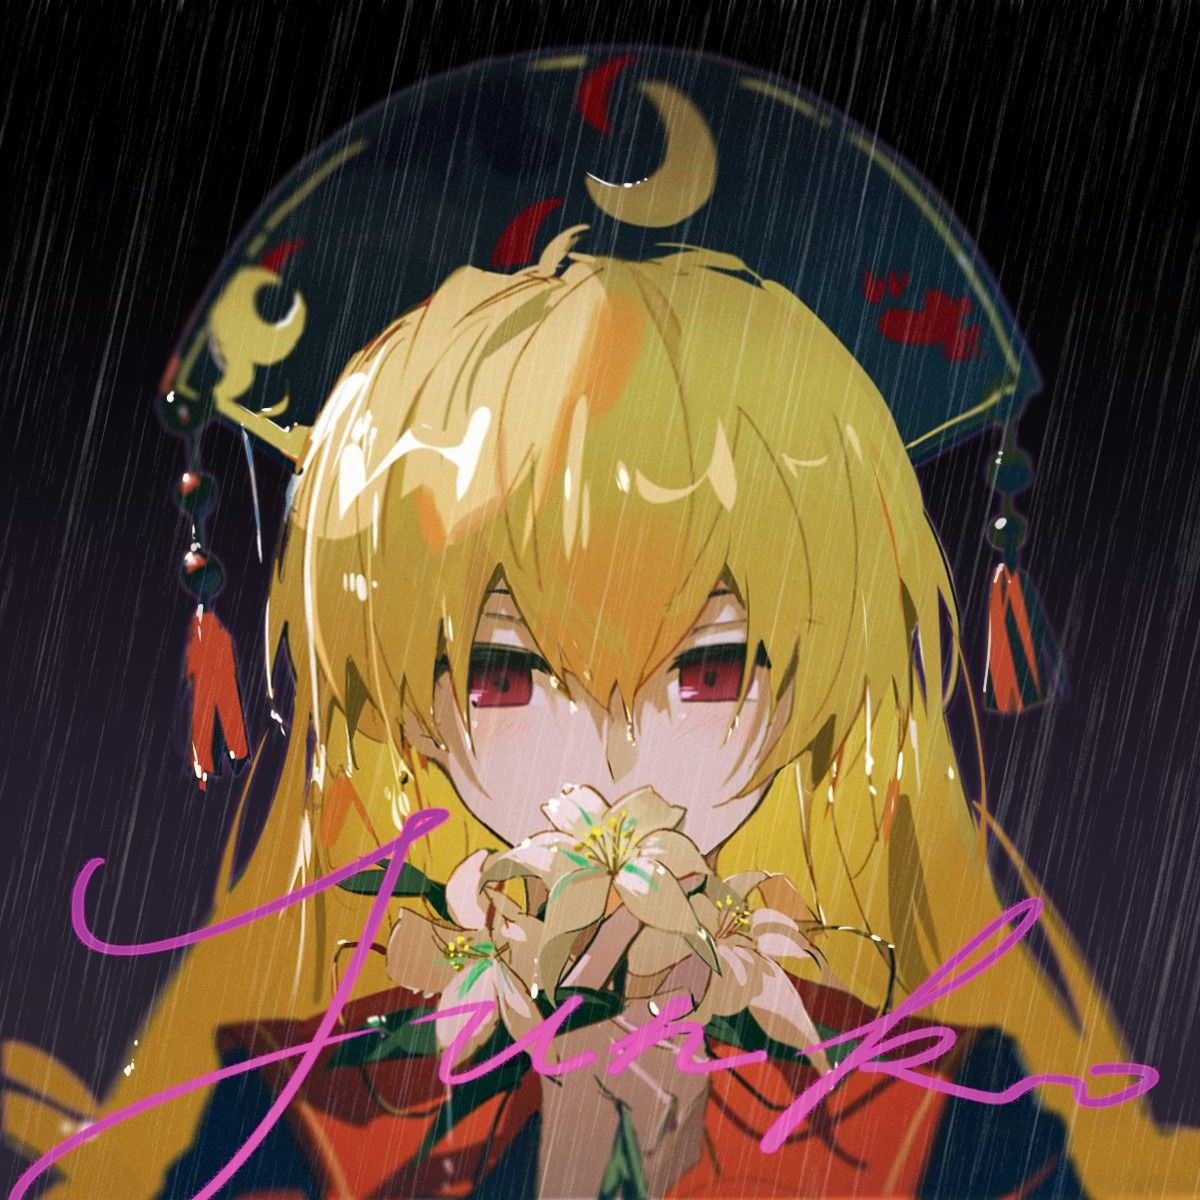 touhou project おしゃれまとめの人気アイデア pinterest merry the magician イラスト 東方 キャラ 東方プロジェクト